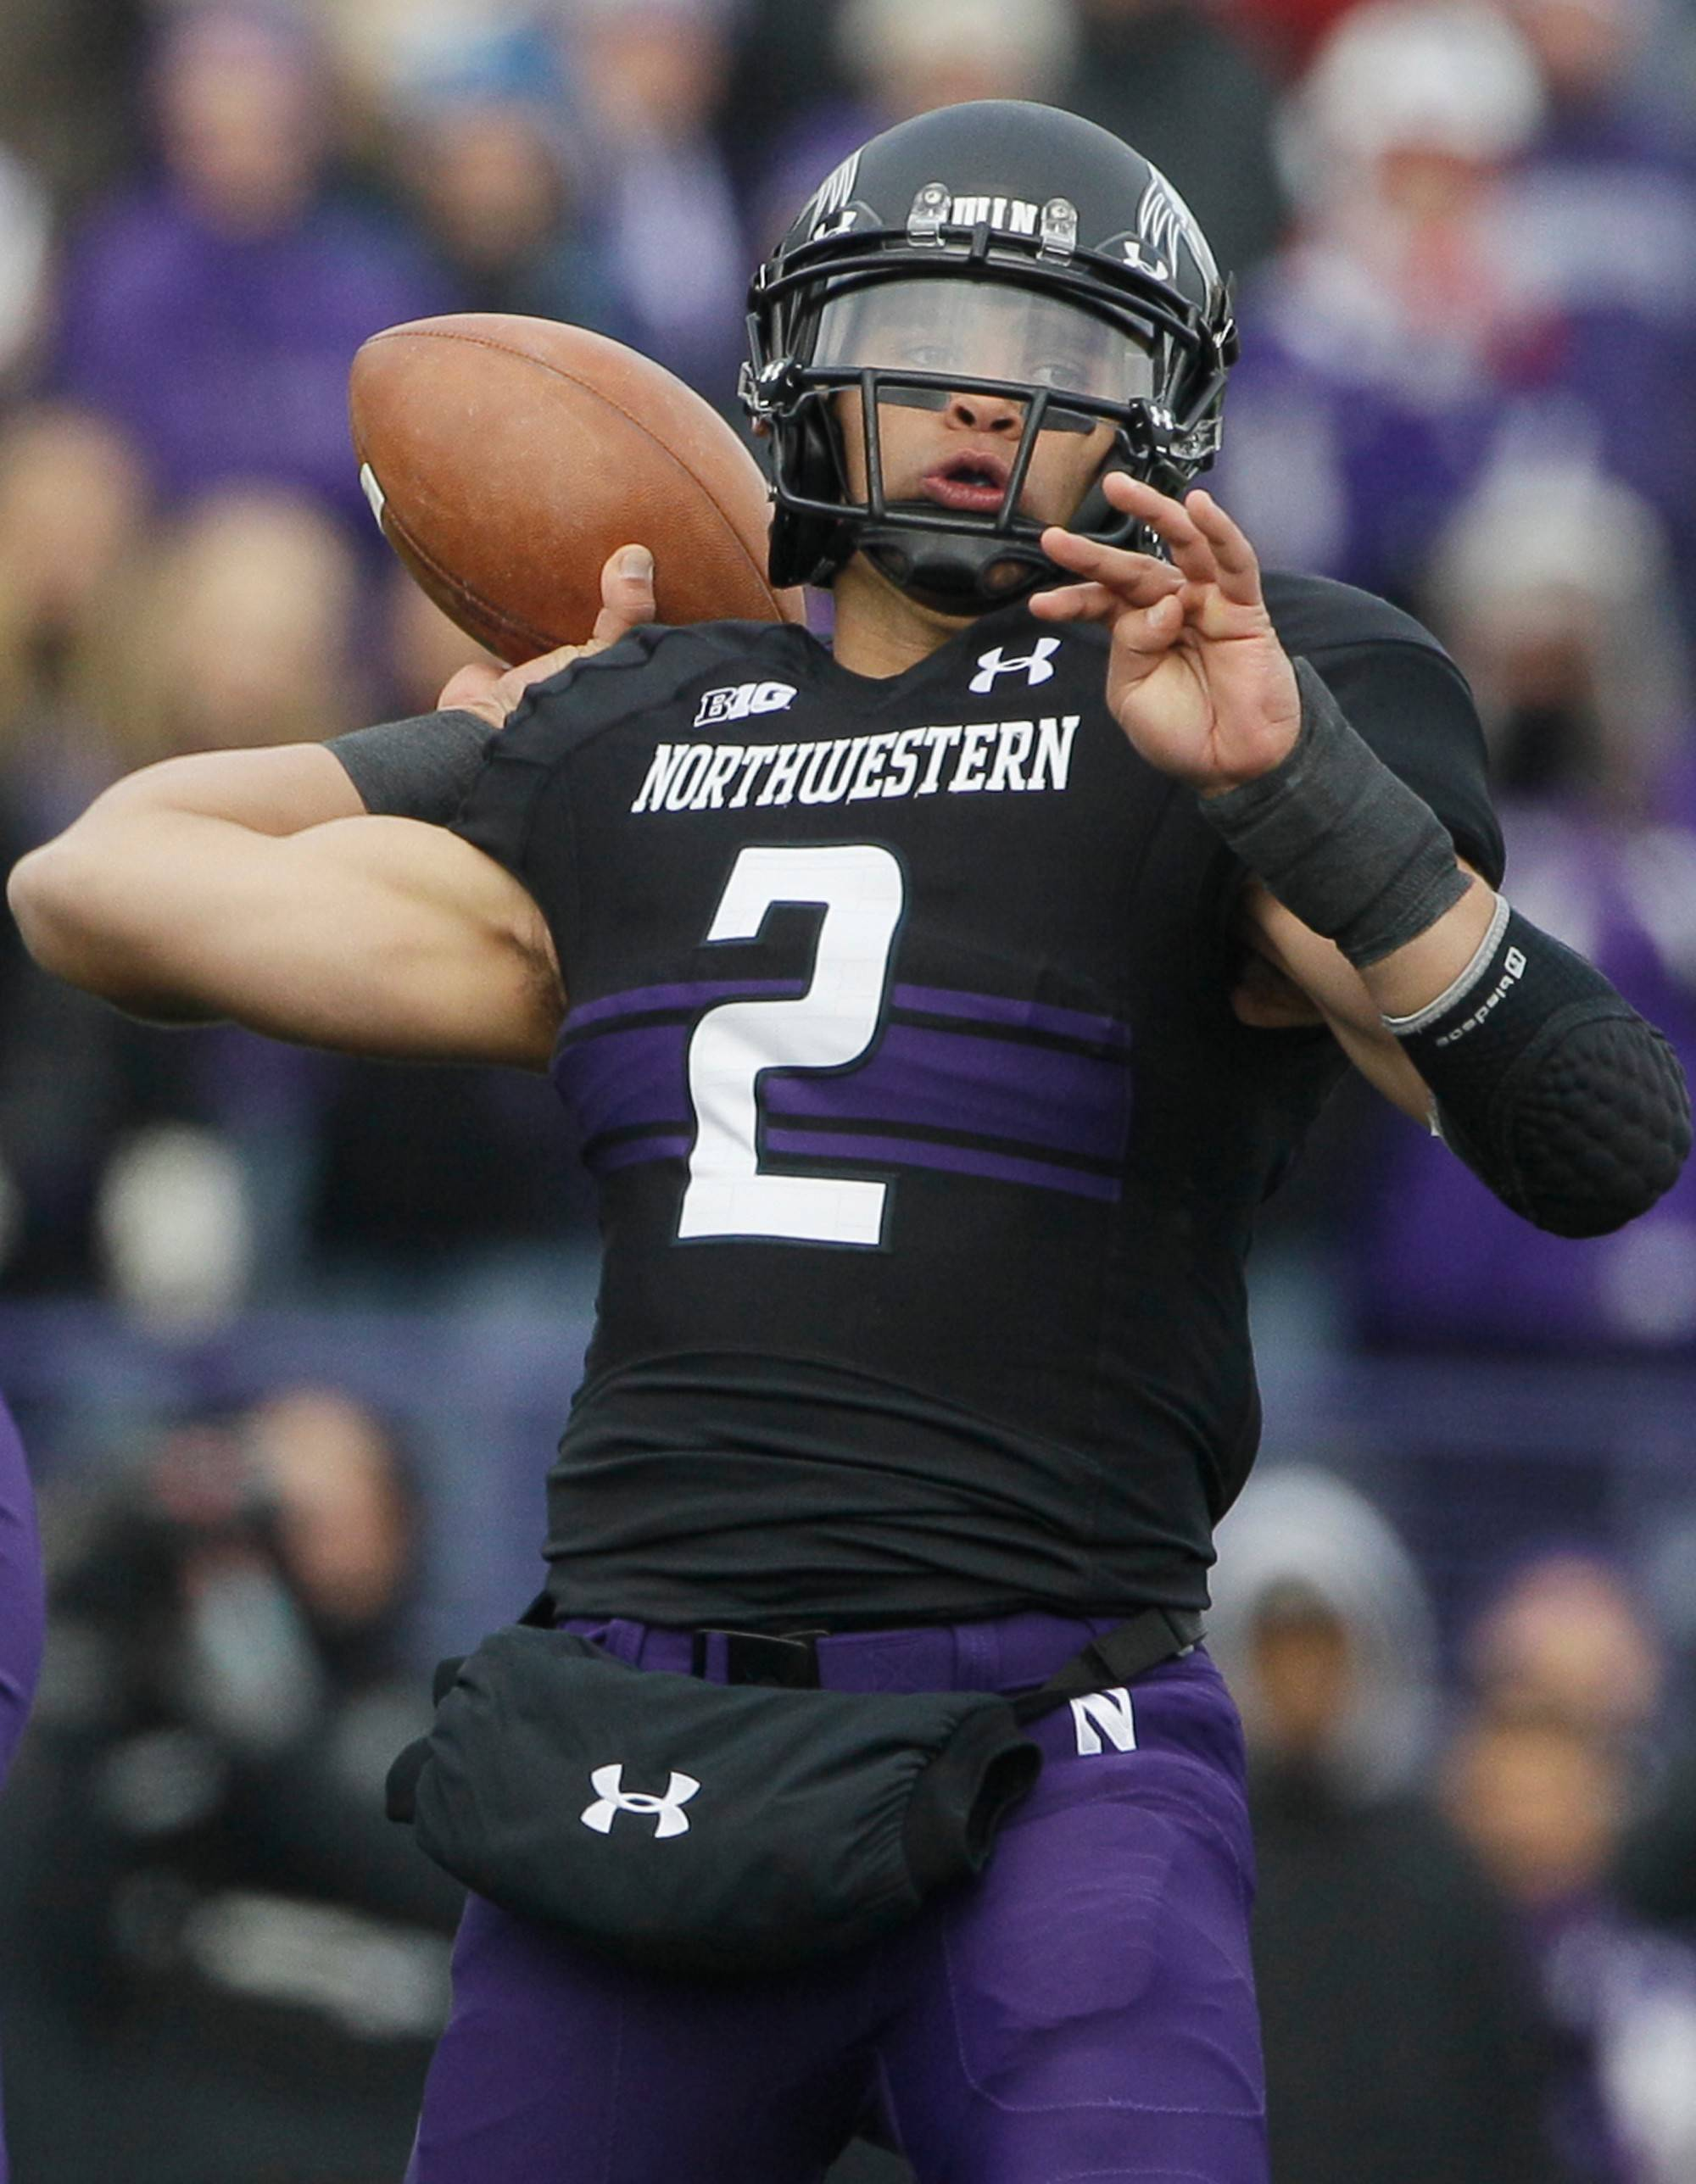 Former Northwestern quarterback Kain Colter led the unionization effort.